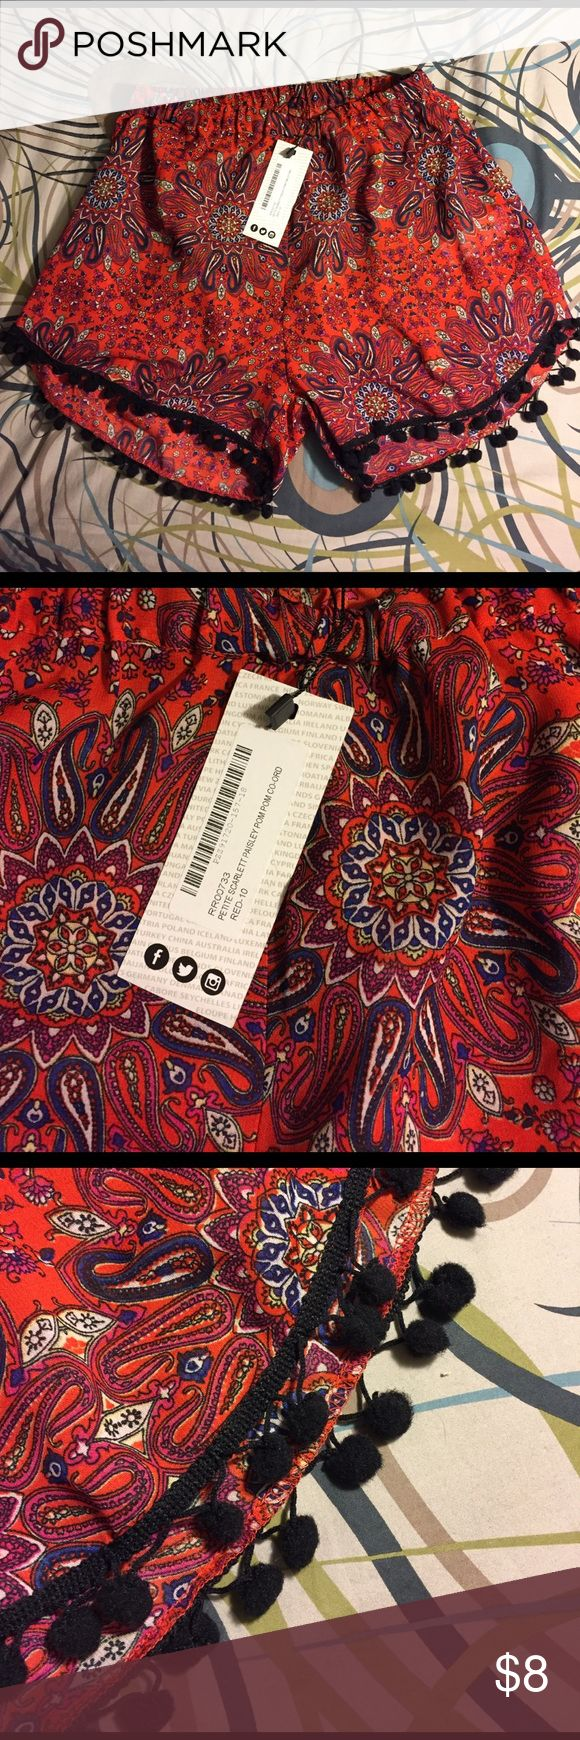 NWT Red and black paisley print women's shorts Adorable flowy red and black paisley printed women's shorts with black pom pom details on the bottom. Great for the summer, for the beach, and for vacation! Would fit small or xsmall! Boohoo Petite Shorts